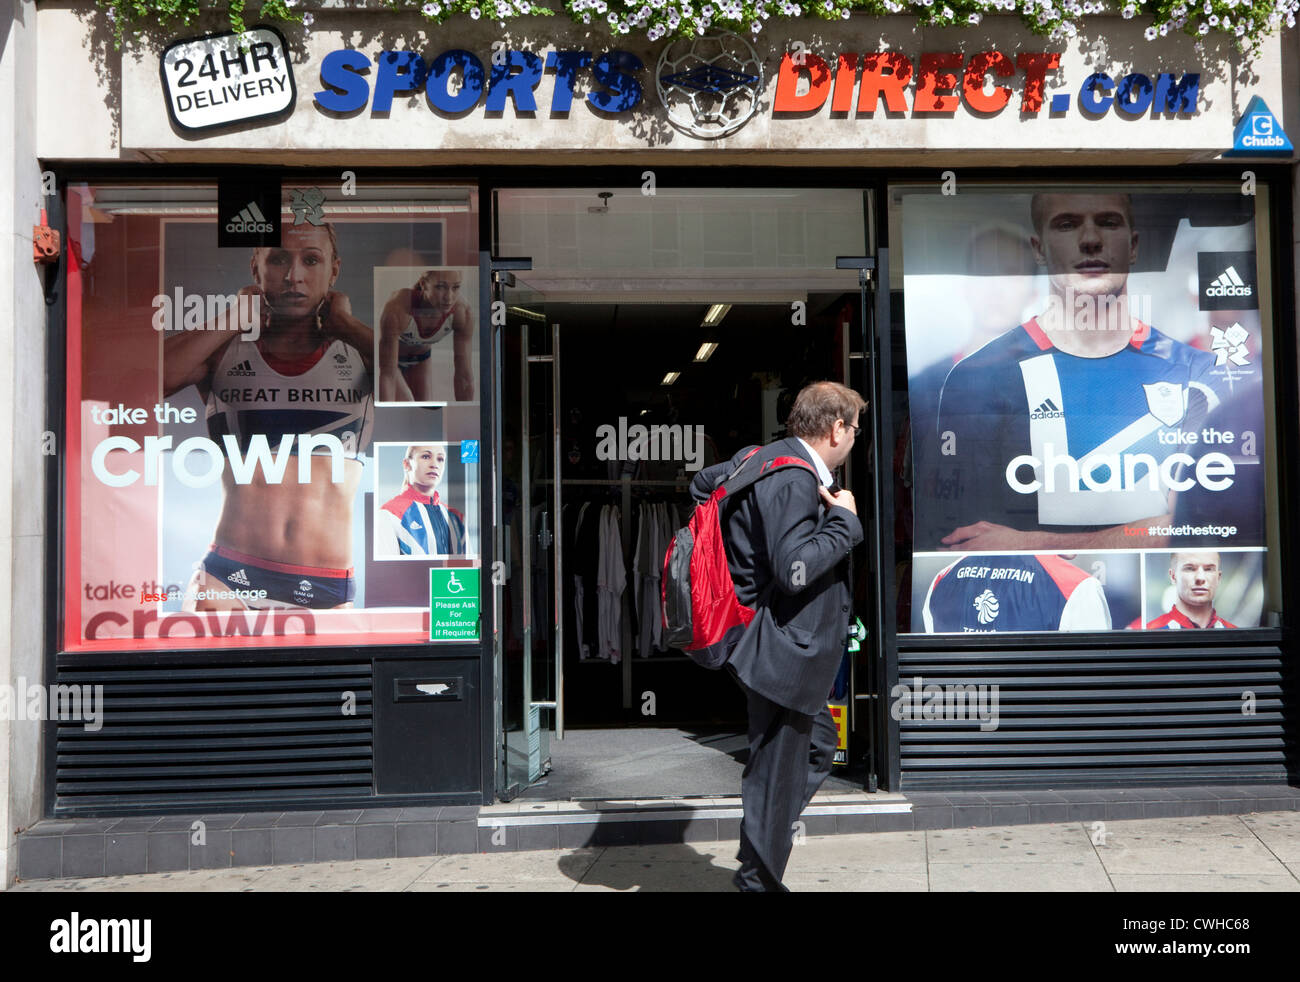 Team GB Olympics stars in window display in Sports Direct store, London - Stock Image